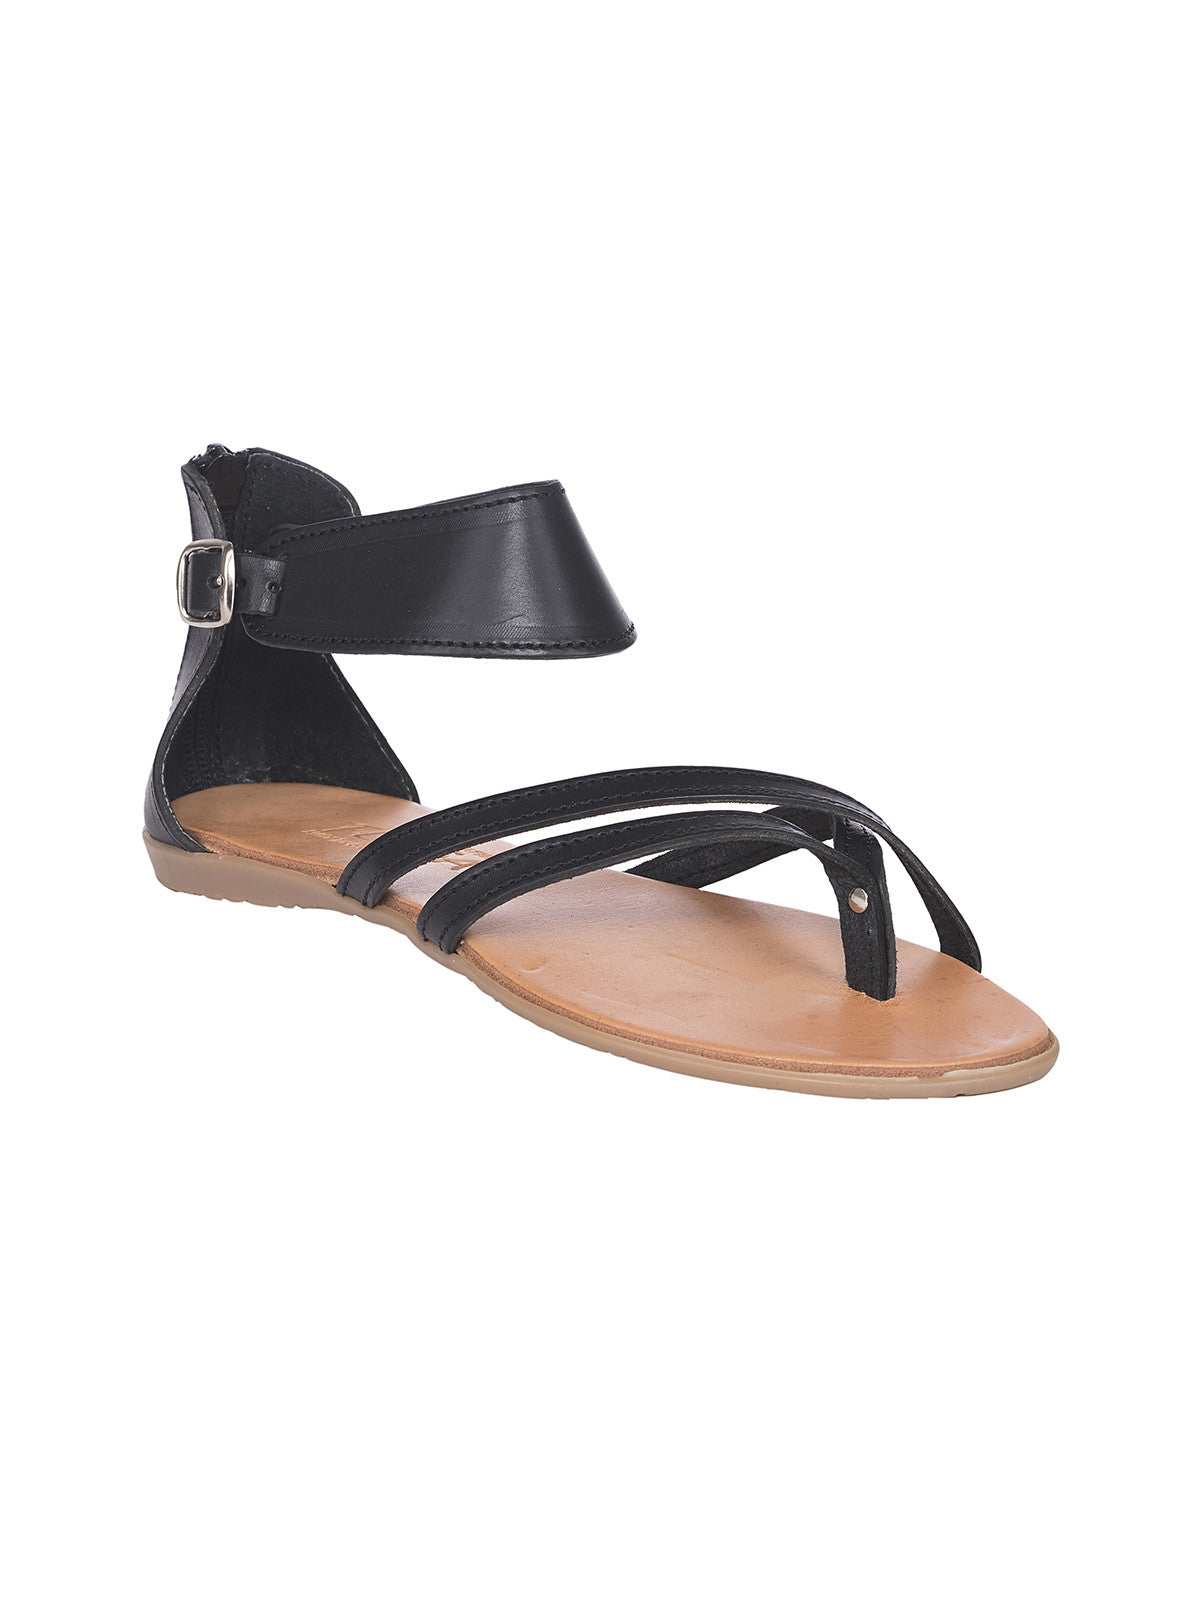 Theodosia Greek Leather Sandals